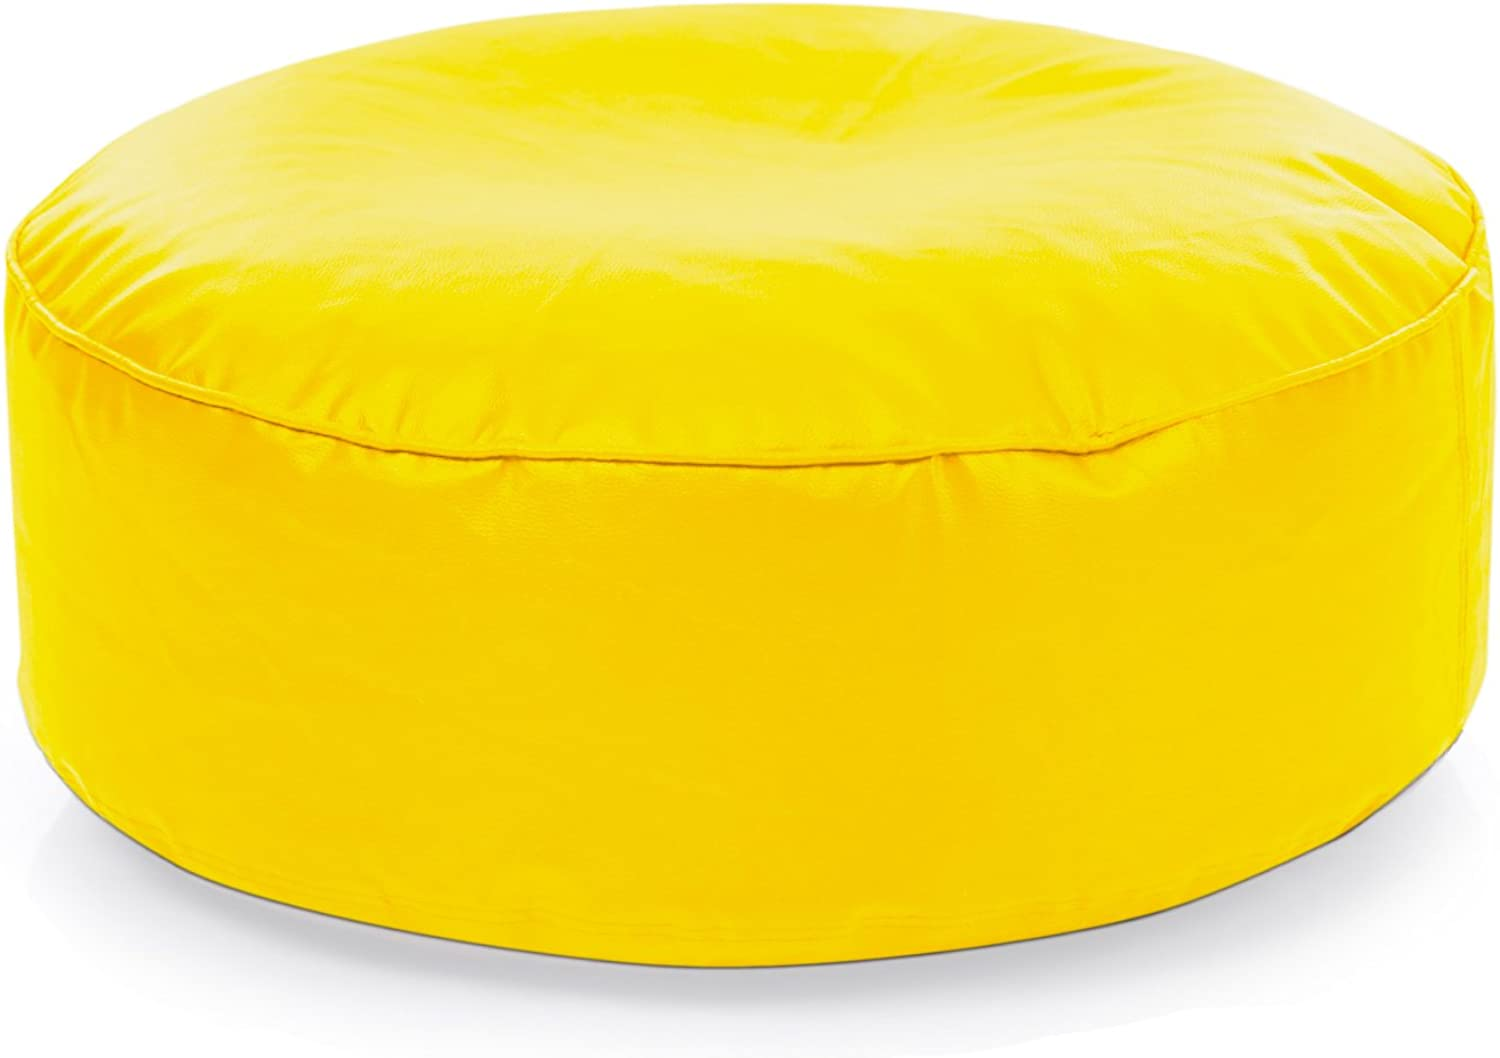 Style Homez Classic Round Floor Cushion L size Yellow color Cover Only